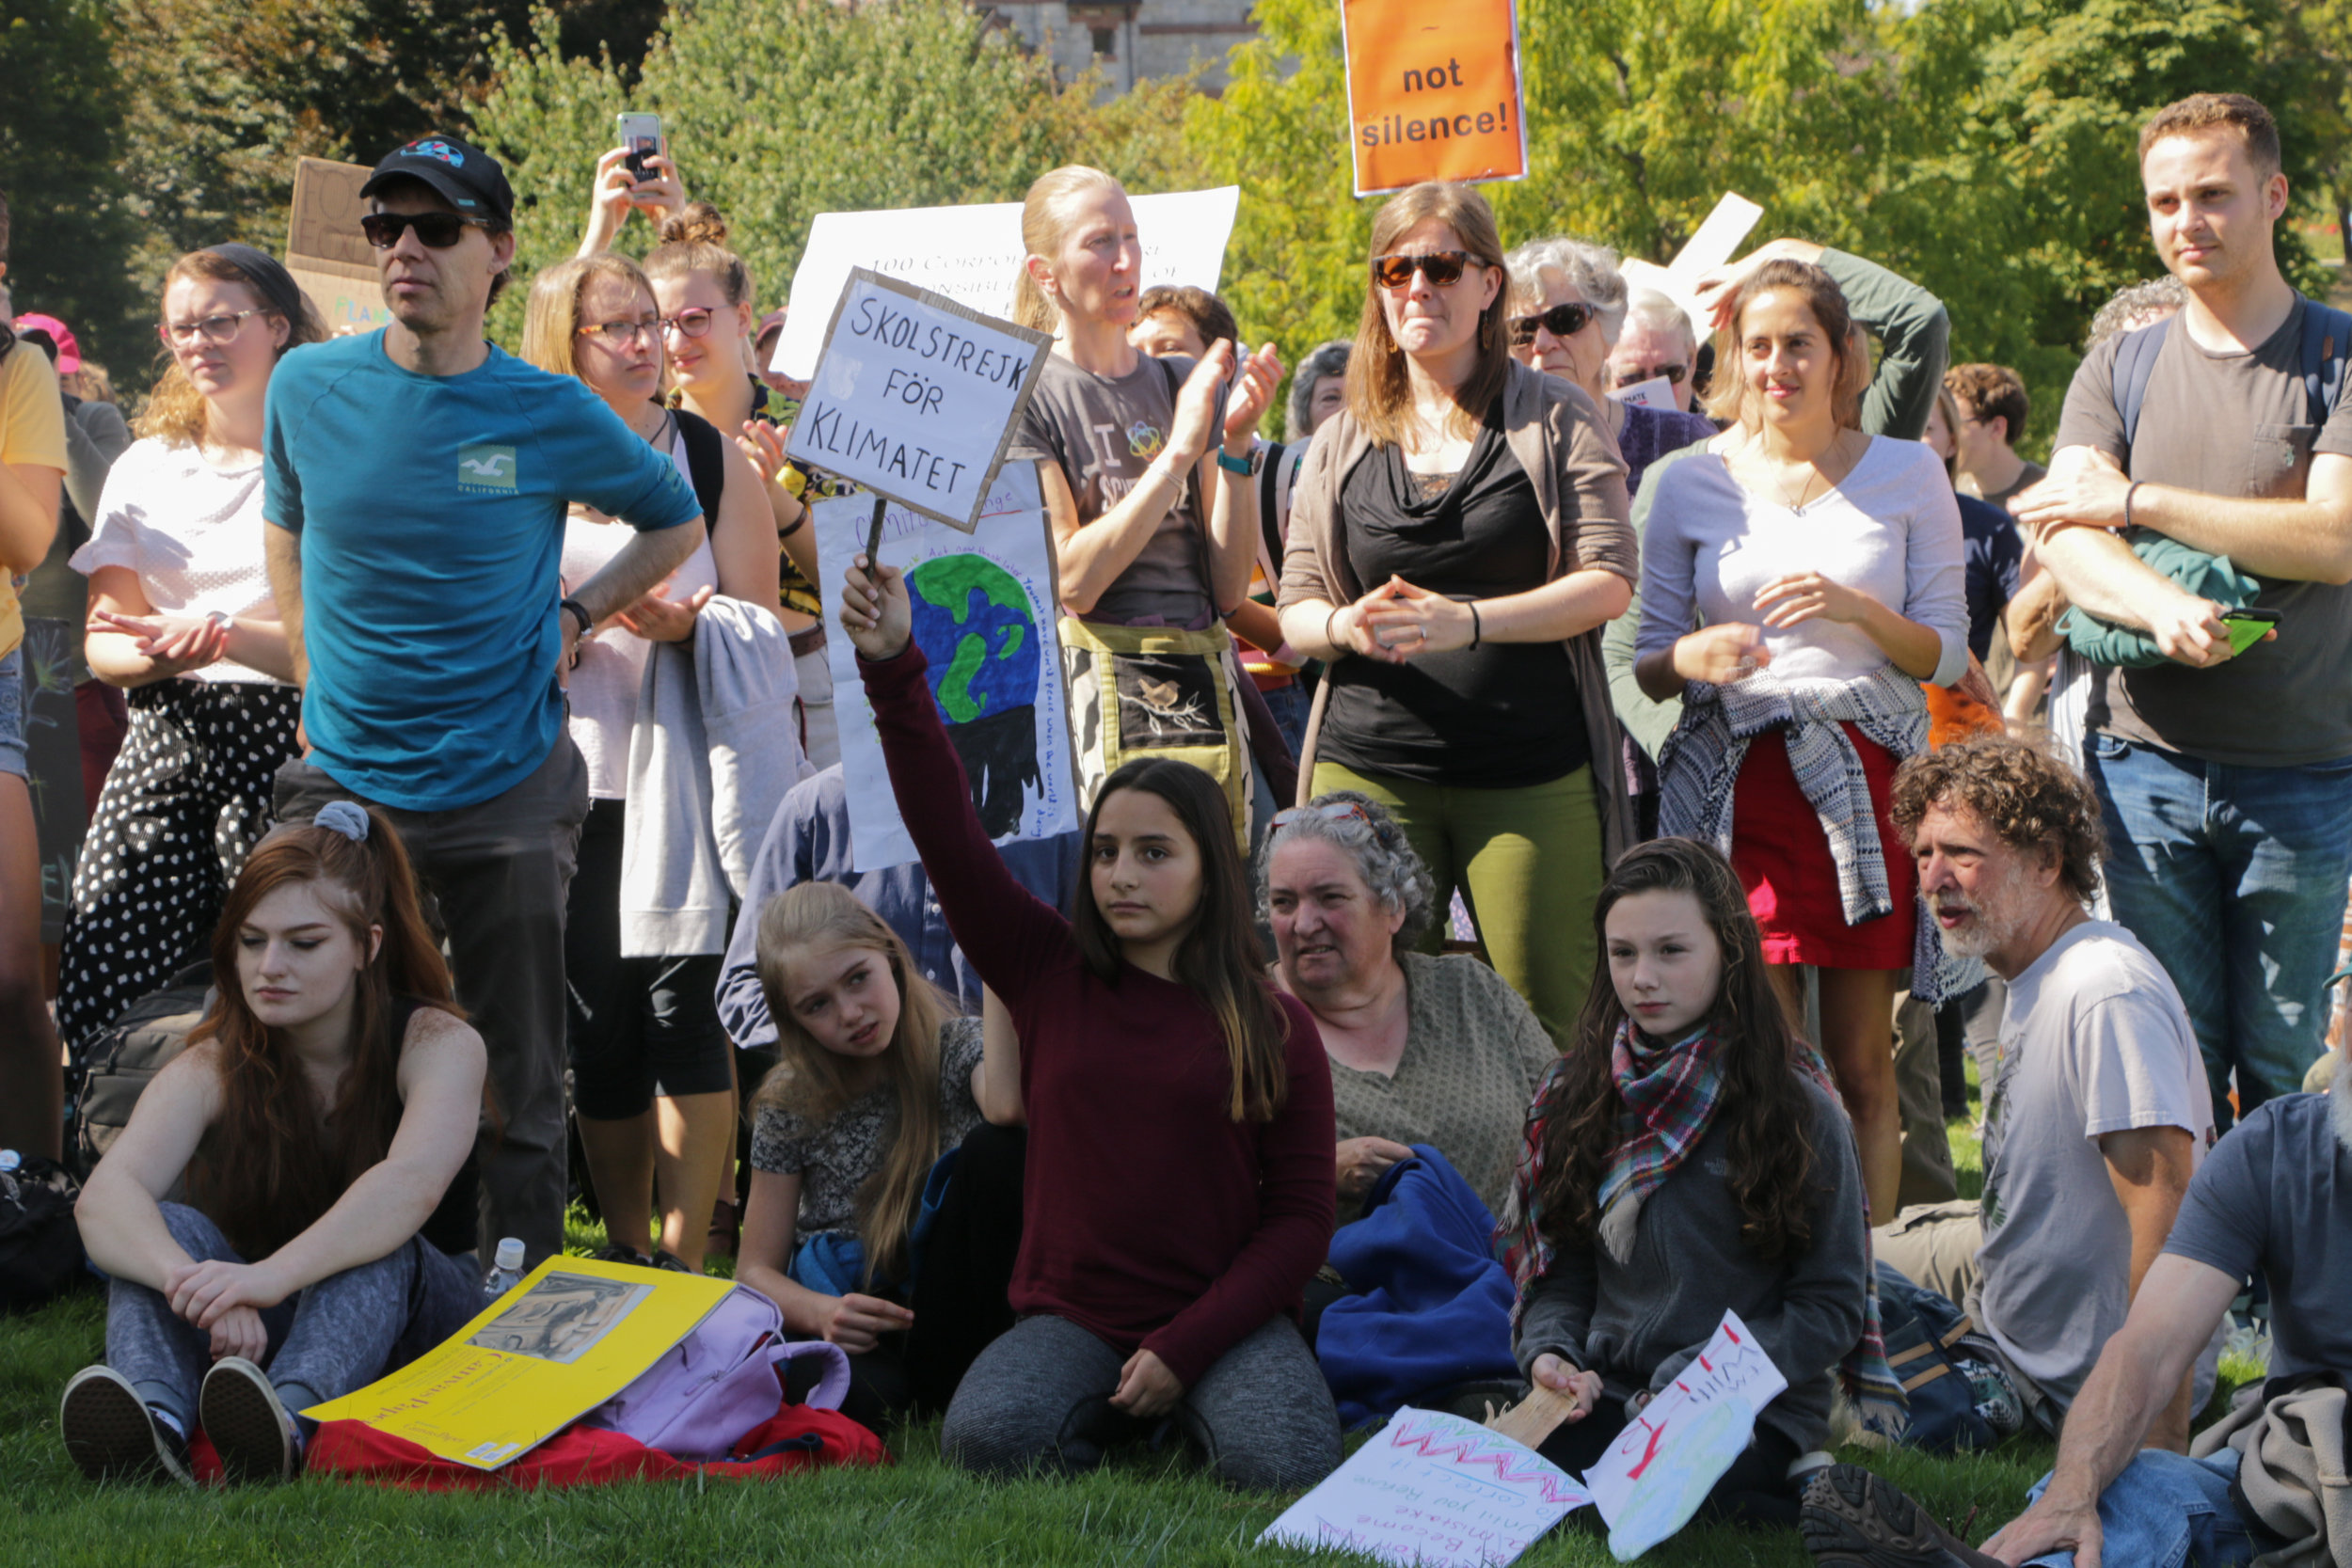 Climate Strike 2019 - On September 20, students, college faculty, and local citizens gathered with Extinction Rebellion and Sunrise Movement at the University of Massachusetts Amherst campus as part of a global climate strike.Photos from this gallery were published in a slide show by The Amherst Wire. click here to view.